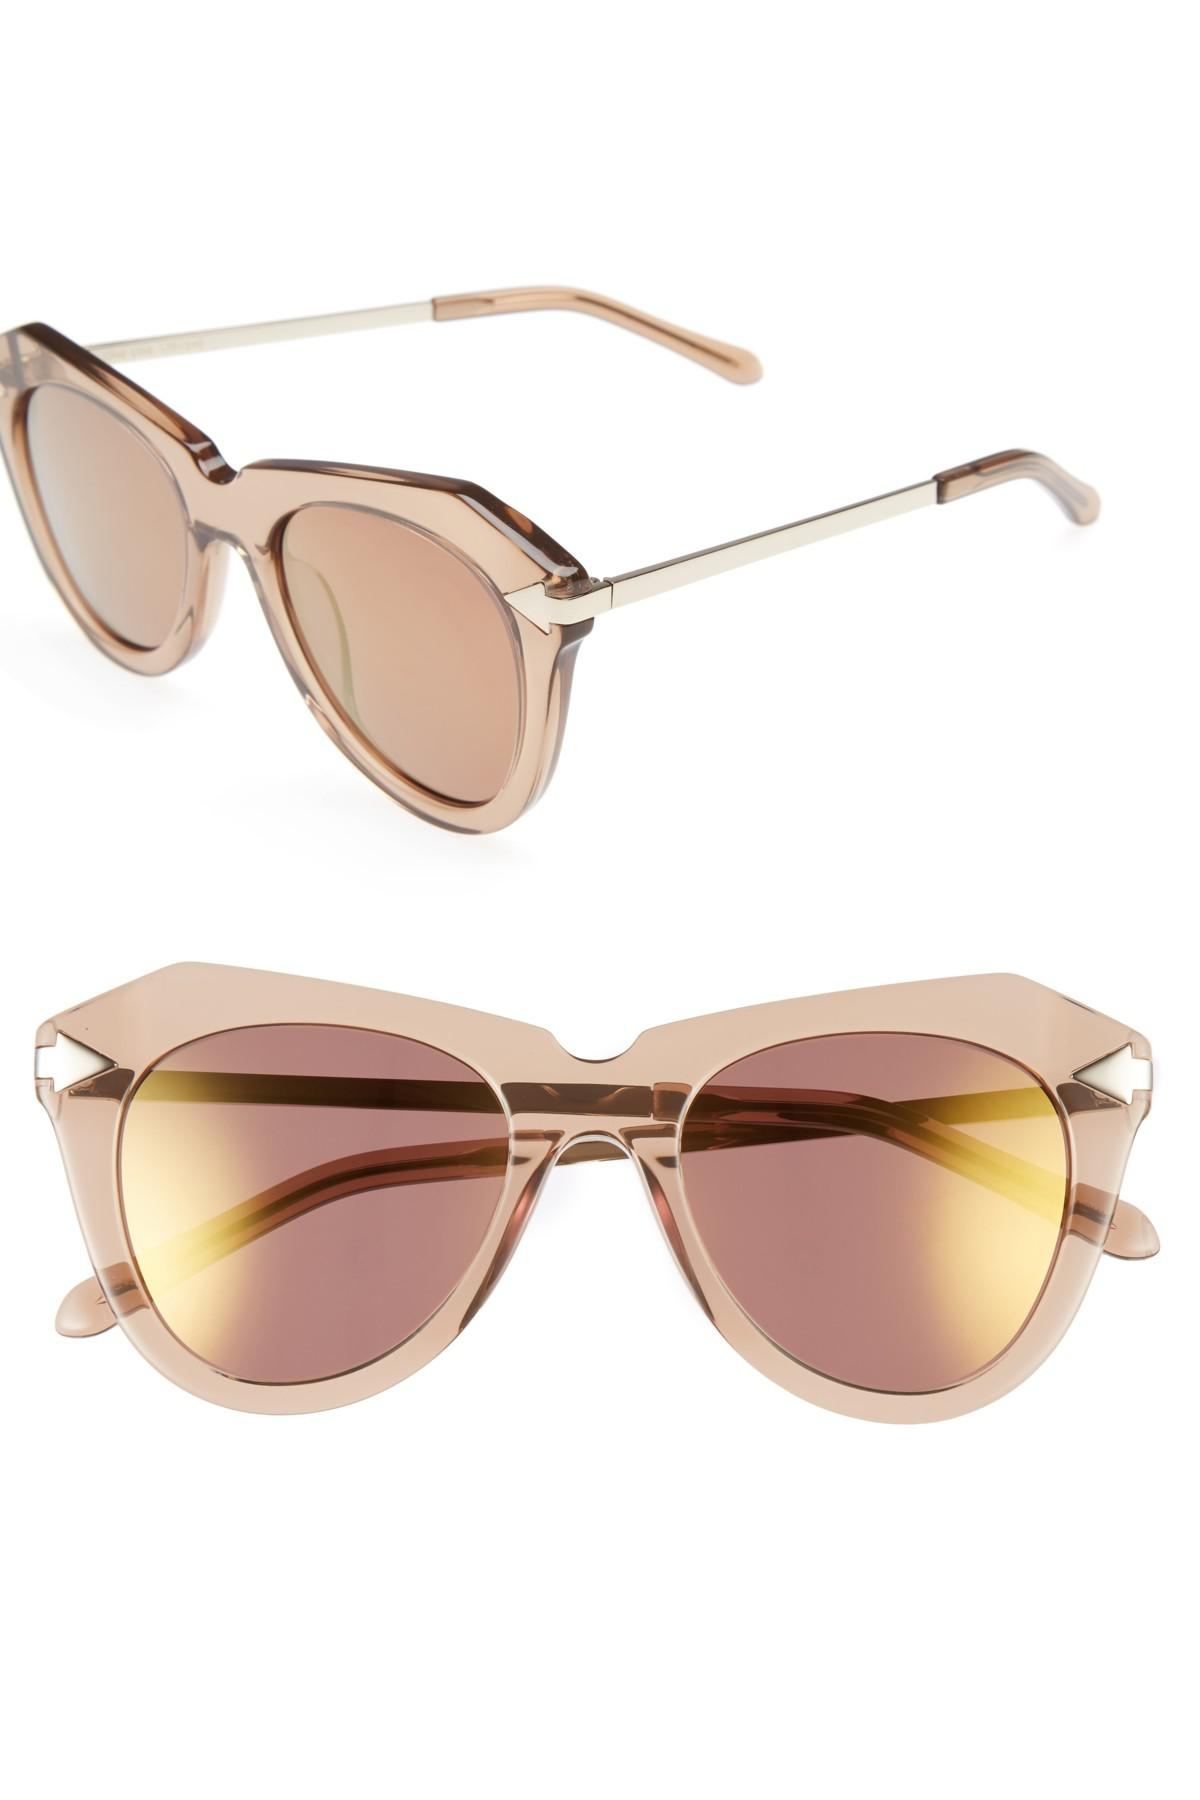 ed5ac469bbe8 Gallery. Previously sold at  Nordstrom Rack · Women s Cat Eye Sunglasses ...